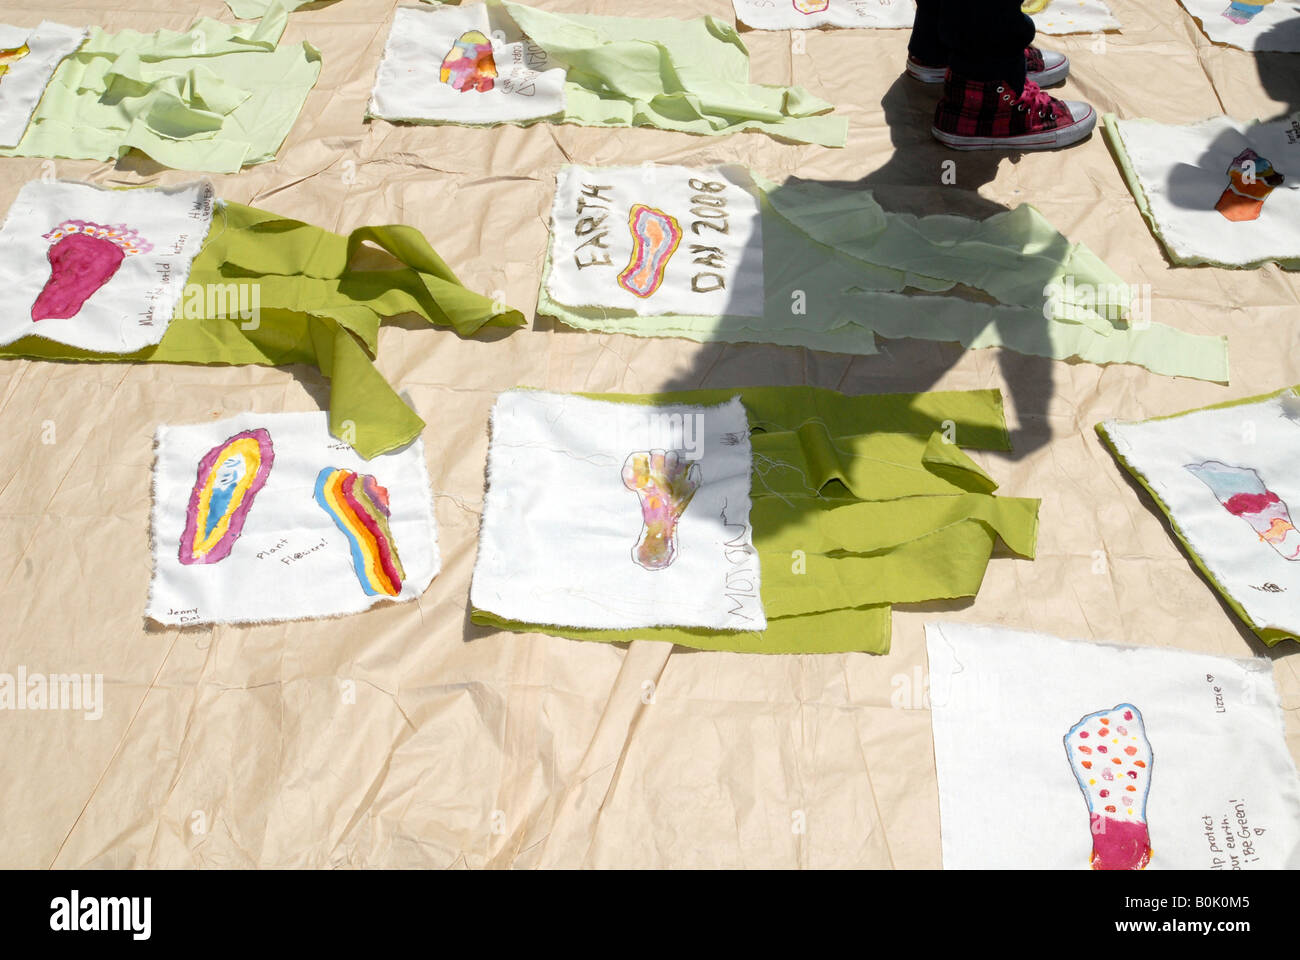 Reduce Your Carbon Footprint Parade Scroll at the NYU Earth Day street fair - Stock Image